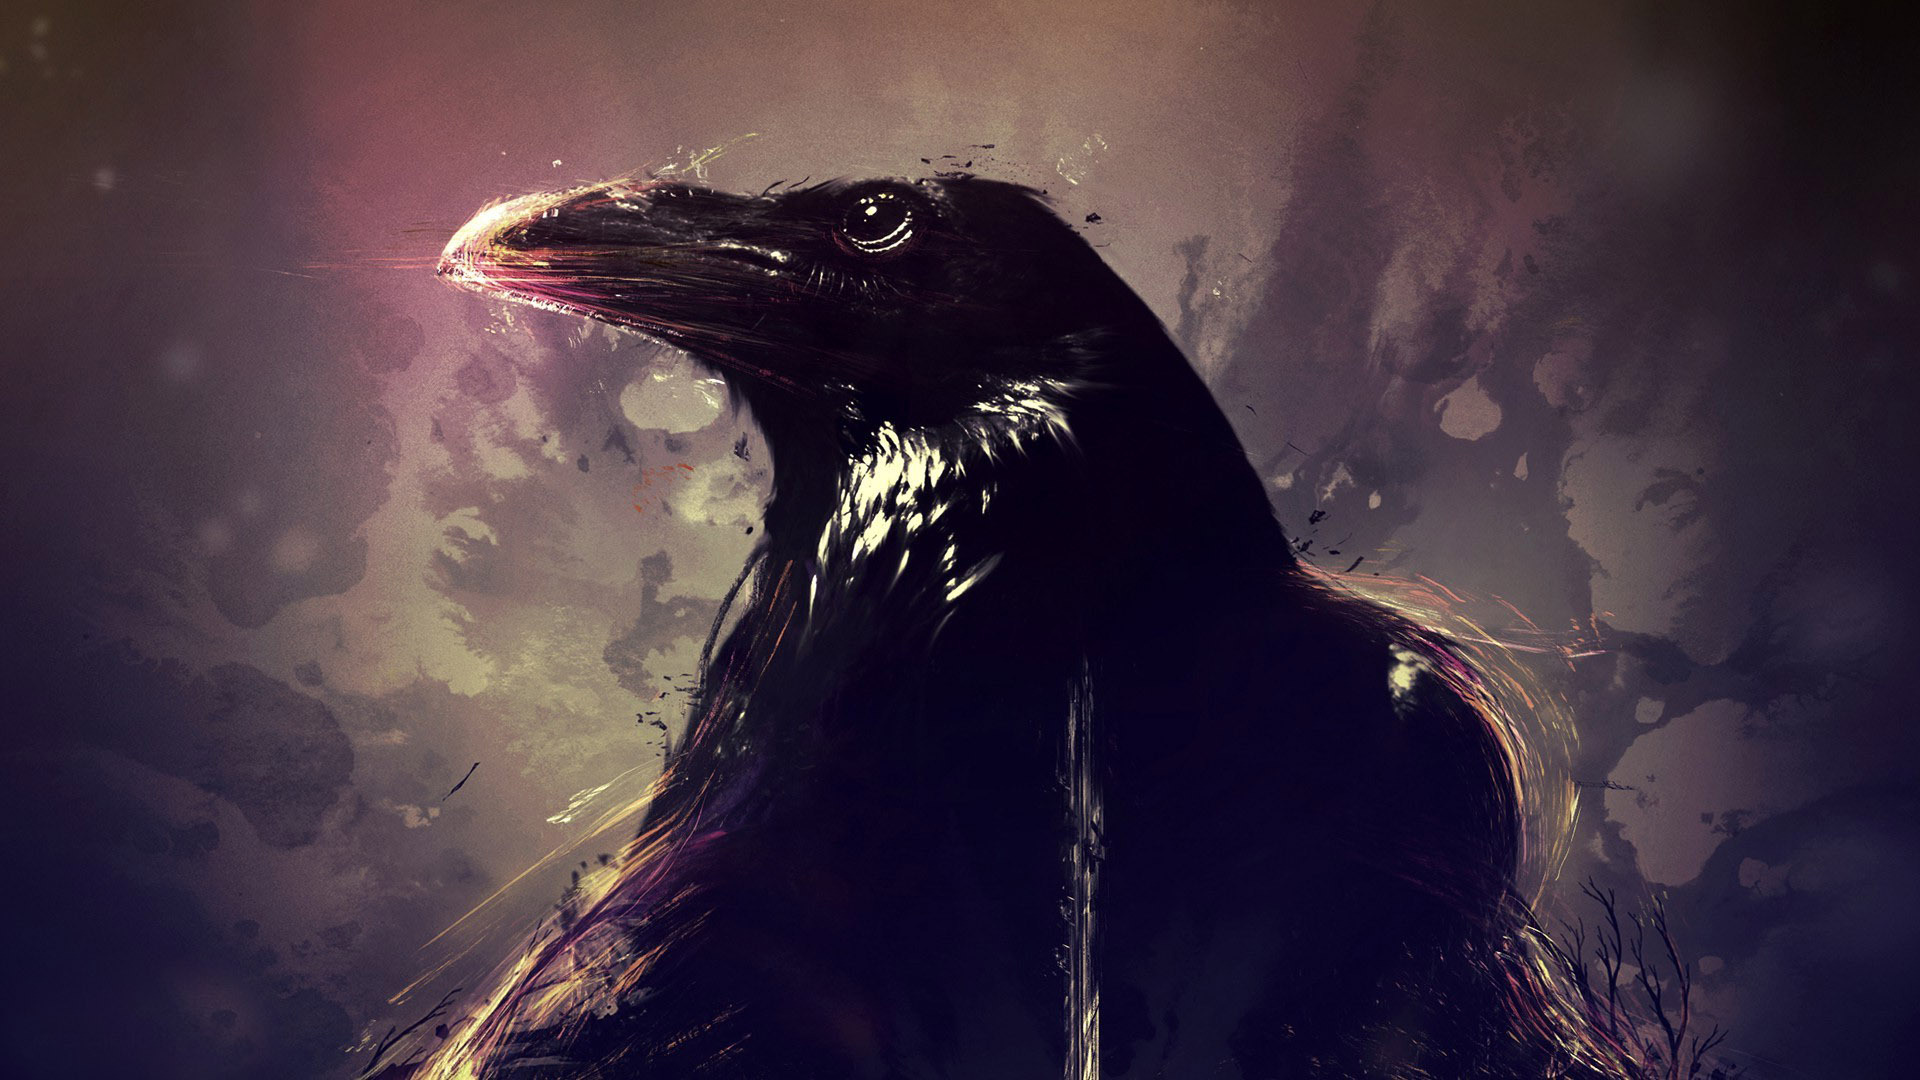 30 The <b>Crow</b> HD <b>Wallpapers</b> | Backgrounds - <b>Wallpaper</b> Abyss